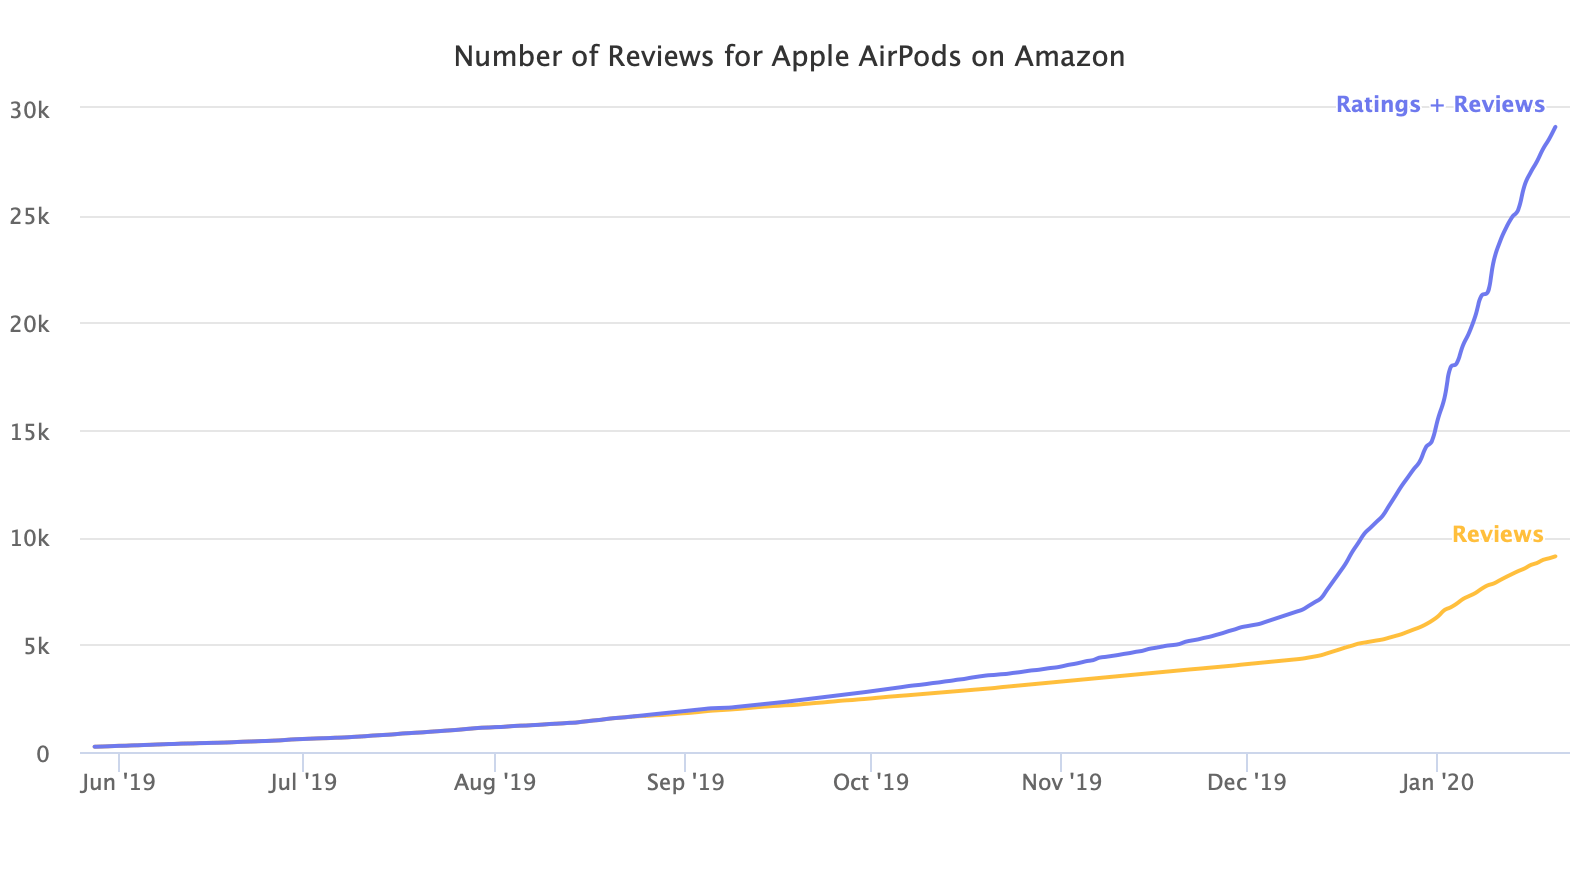 Number of Reviews for Apple AirPods on Amazon